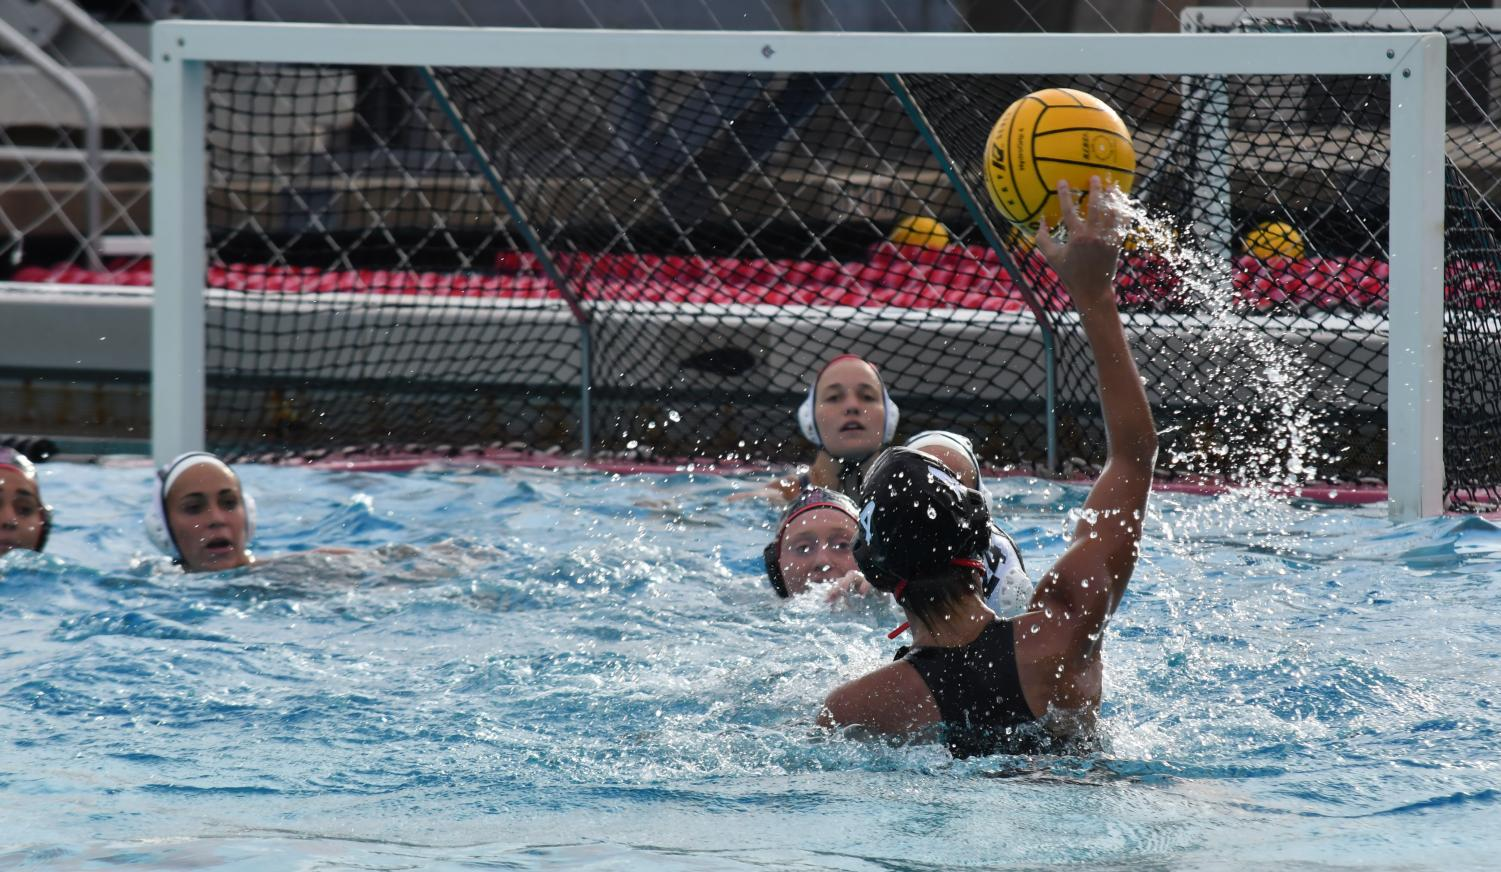 Freshman driver Karli Canale prepares to pass the ball during the Aztecs 5-2 loss against Loyola Marymount University on March 9 at the Aztec Aquaplex.